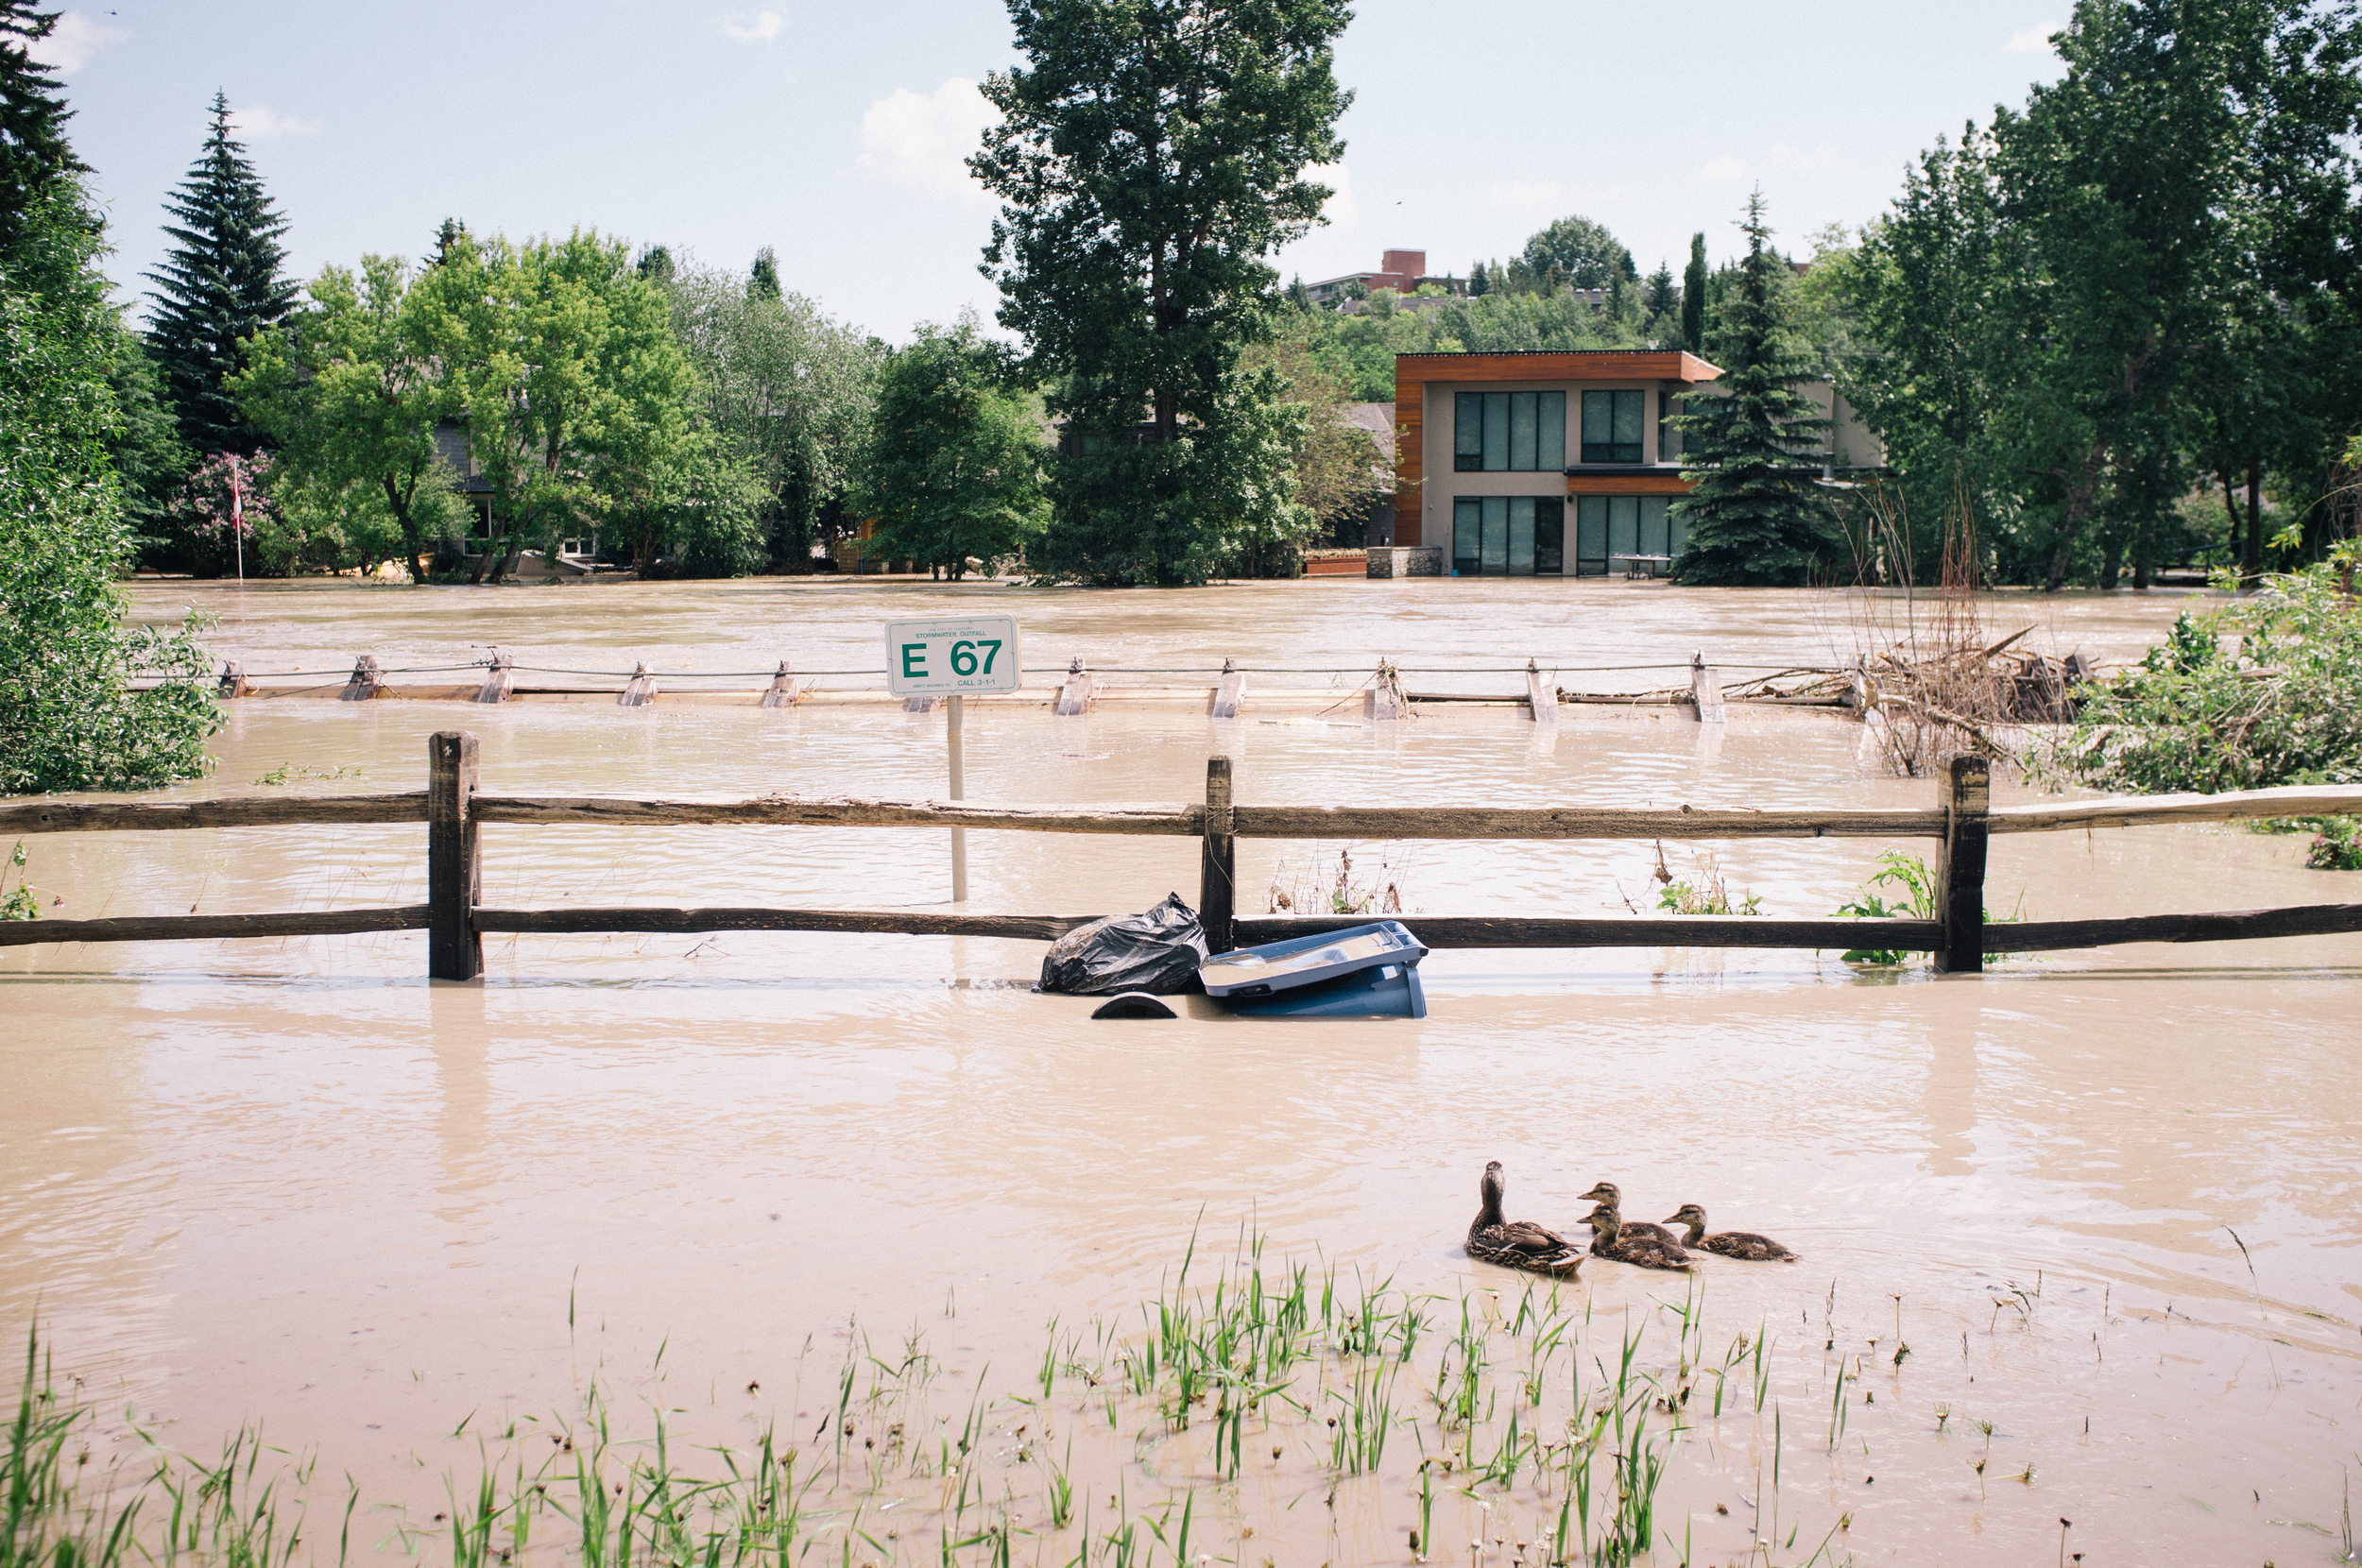 Flooded homes and the remains of the footbridge on the banks of the Elbow River.  (See: Thursday)